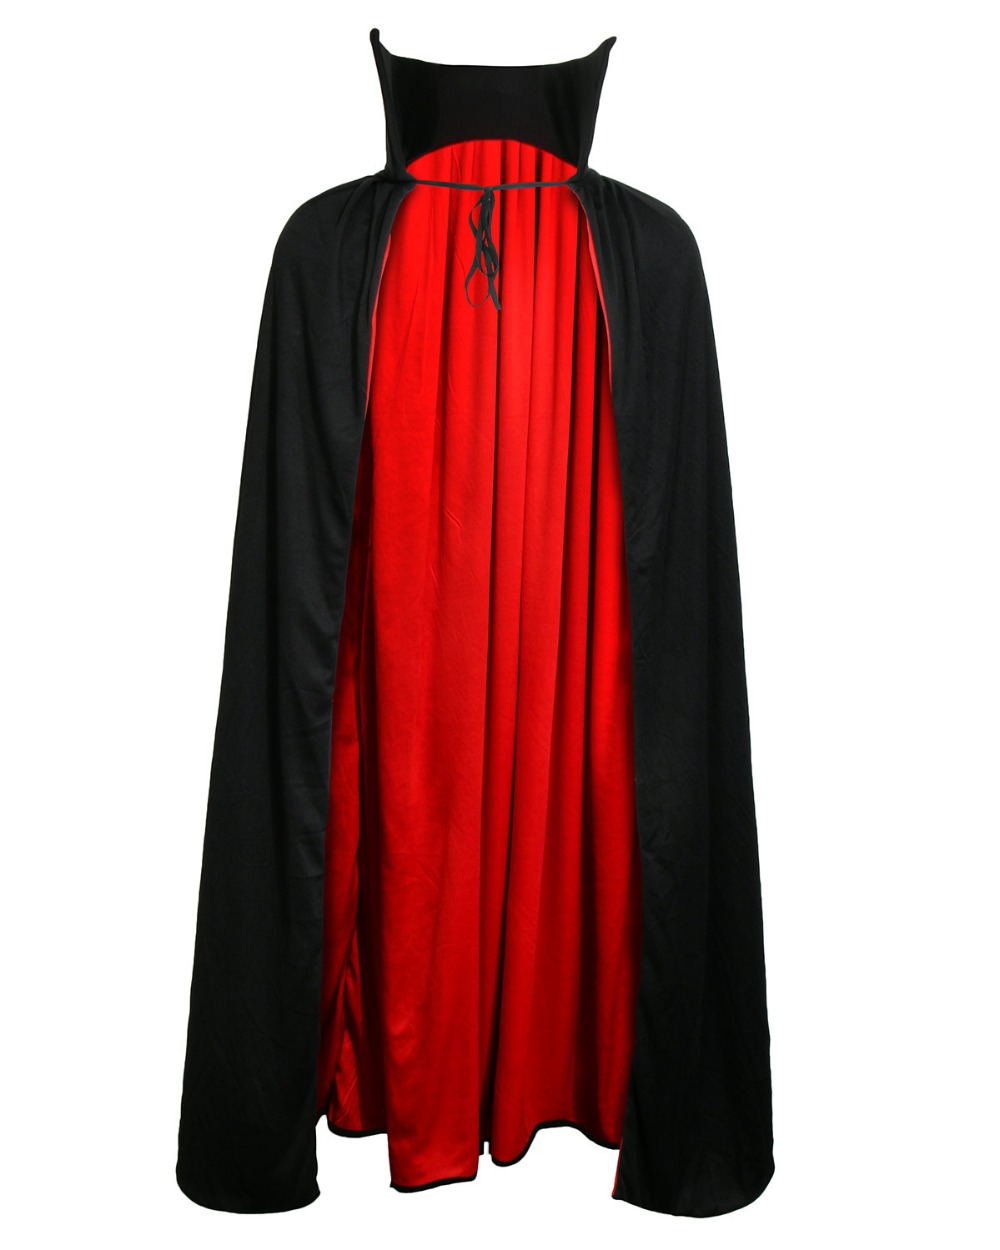 48-54-Fully-Lined-Vampire-Cape-Gothic-Cloak-Wicca-Robe-Witch-Larp-Cape-Unisex-Halloween-Costumes.jpg